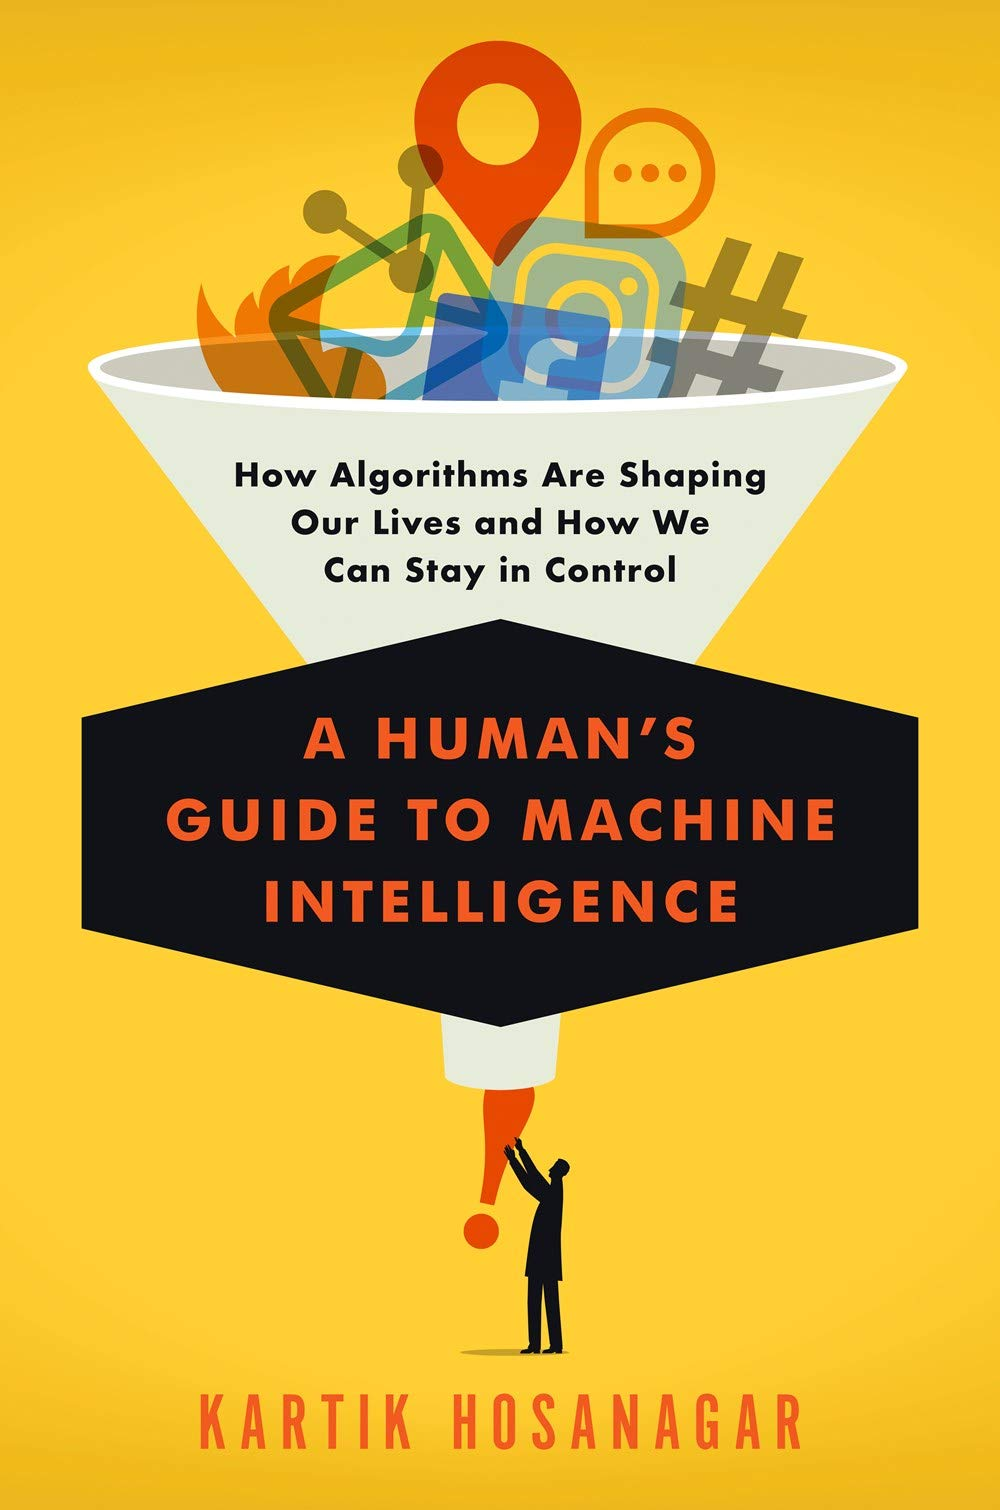 a-human-guide-to-machine-intelligence.jpg